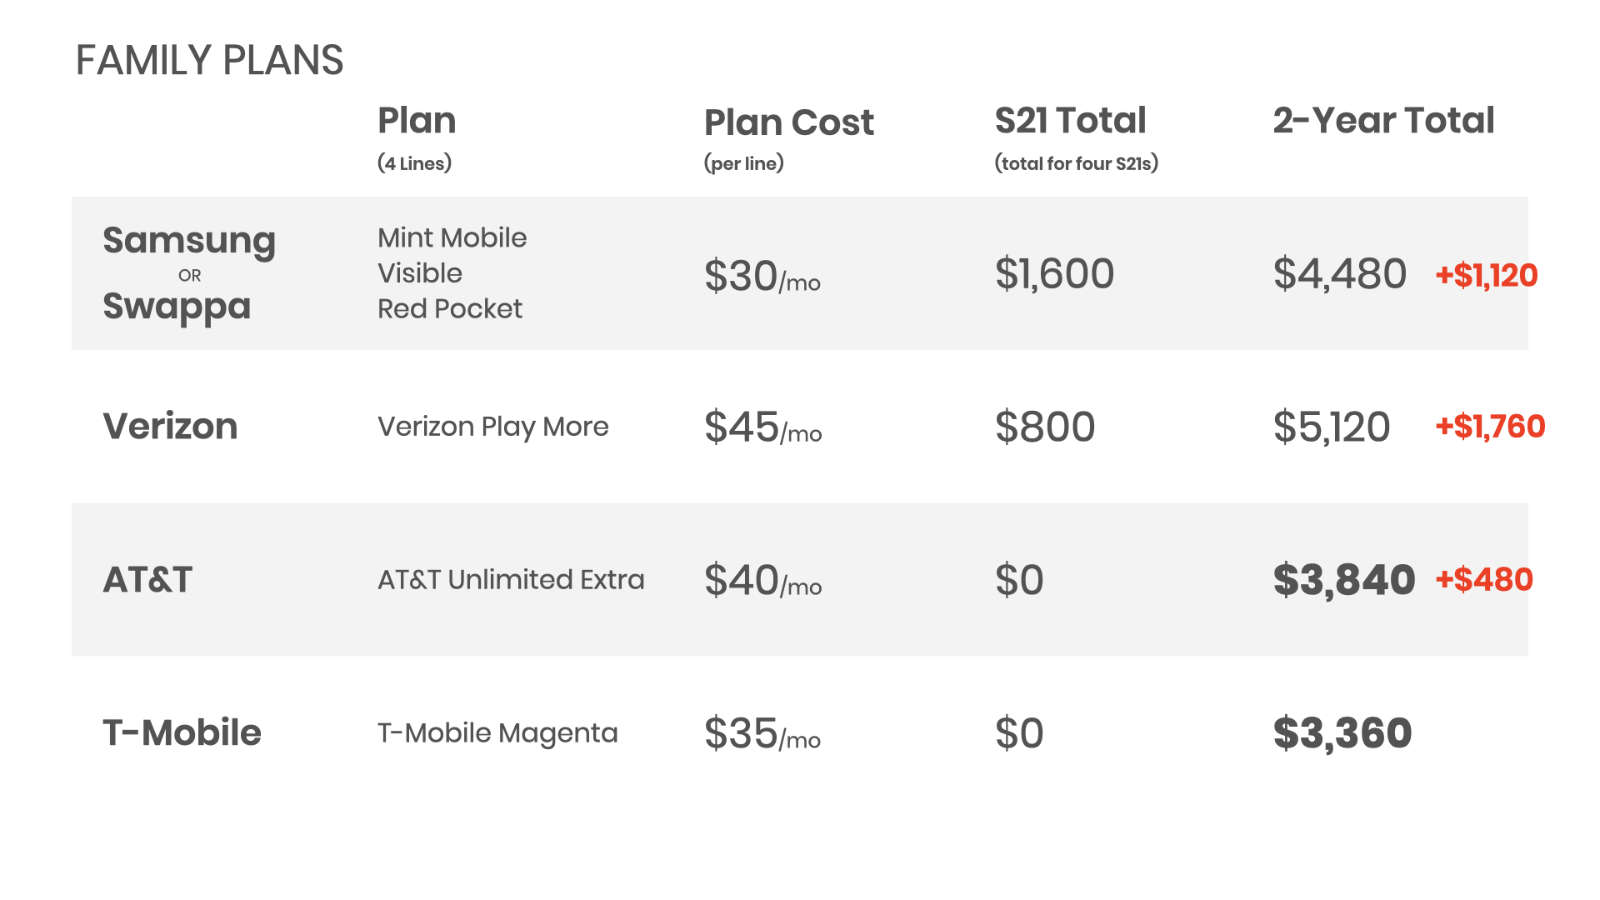 Going with the financing agreements from AT&T and T-Mobile can make sense for family plans with four or more lines